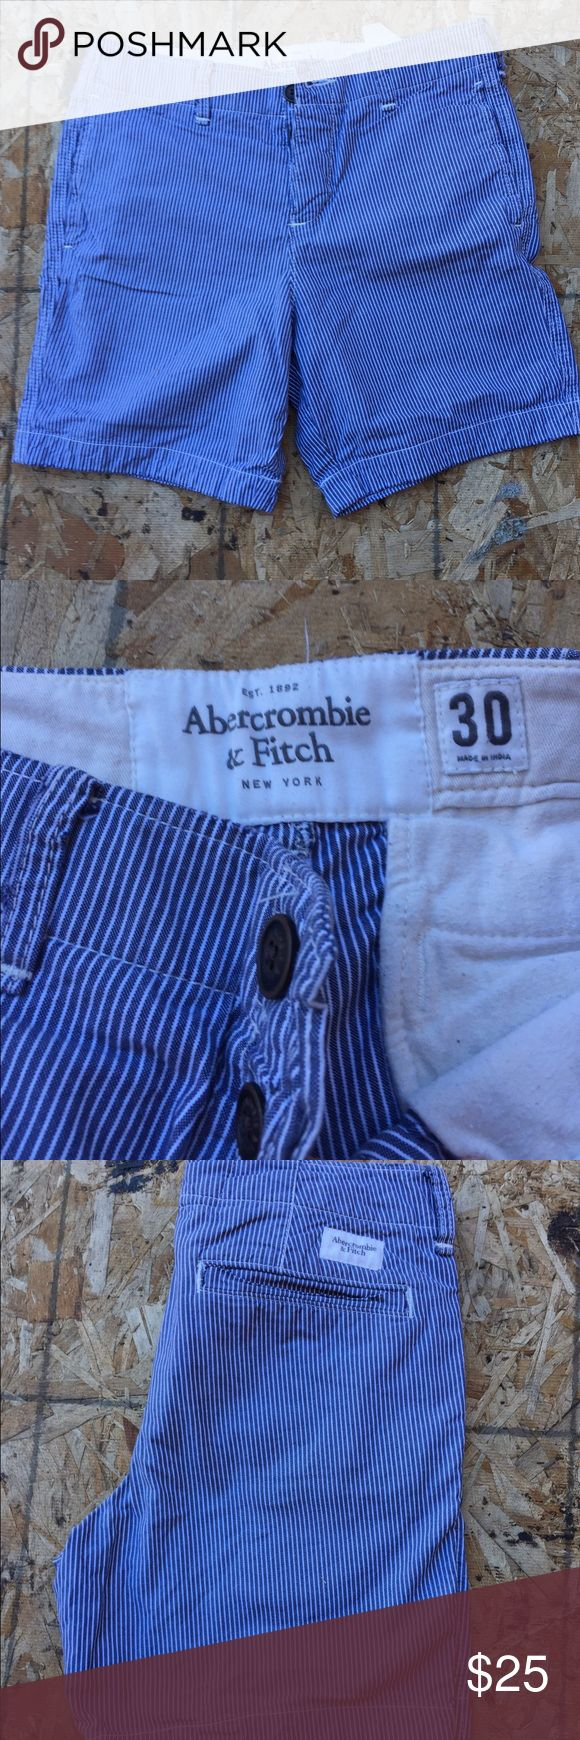 Abercrombie and Fitch shorts/ Chinos  30 Pinstriped white/blue Men's Abercrombie shorts/ Chinos. Mint condition. Only worn once. Abercrombie & Fitch Shorts